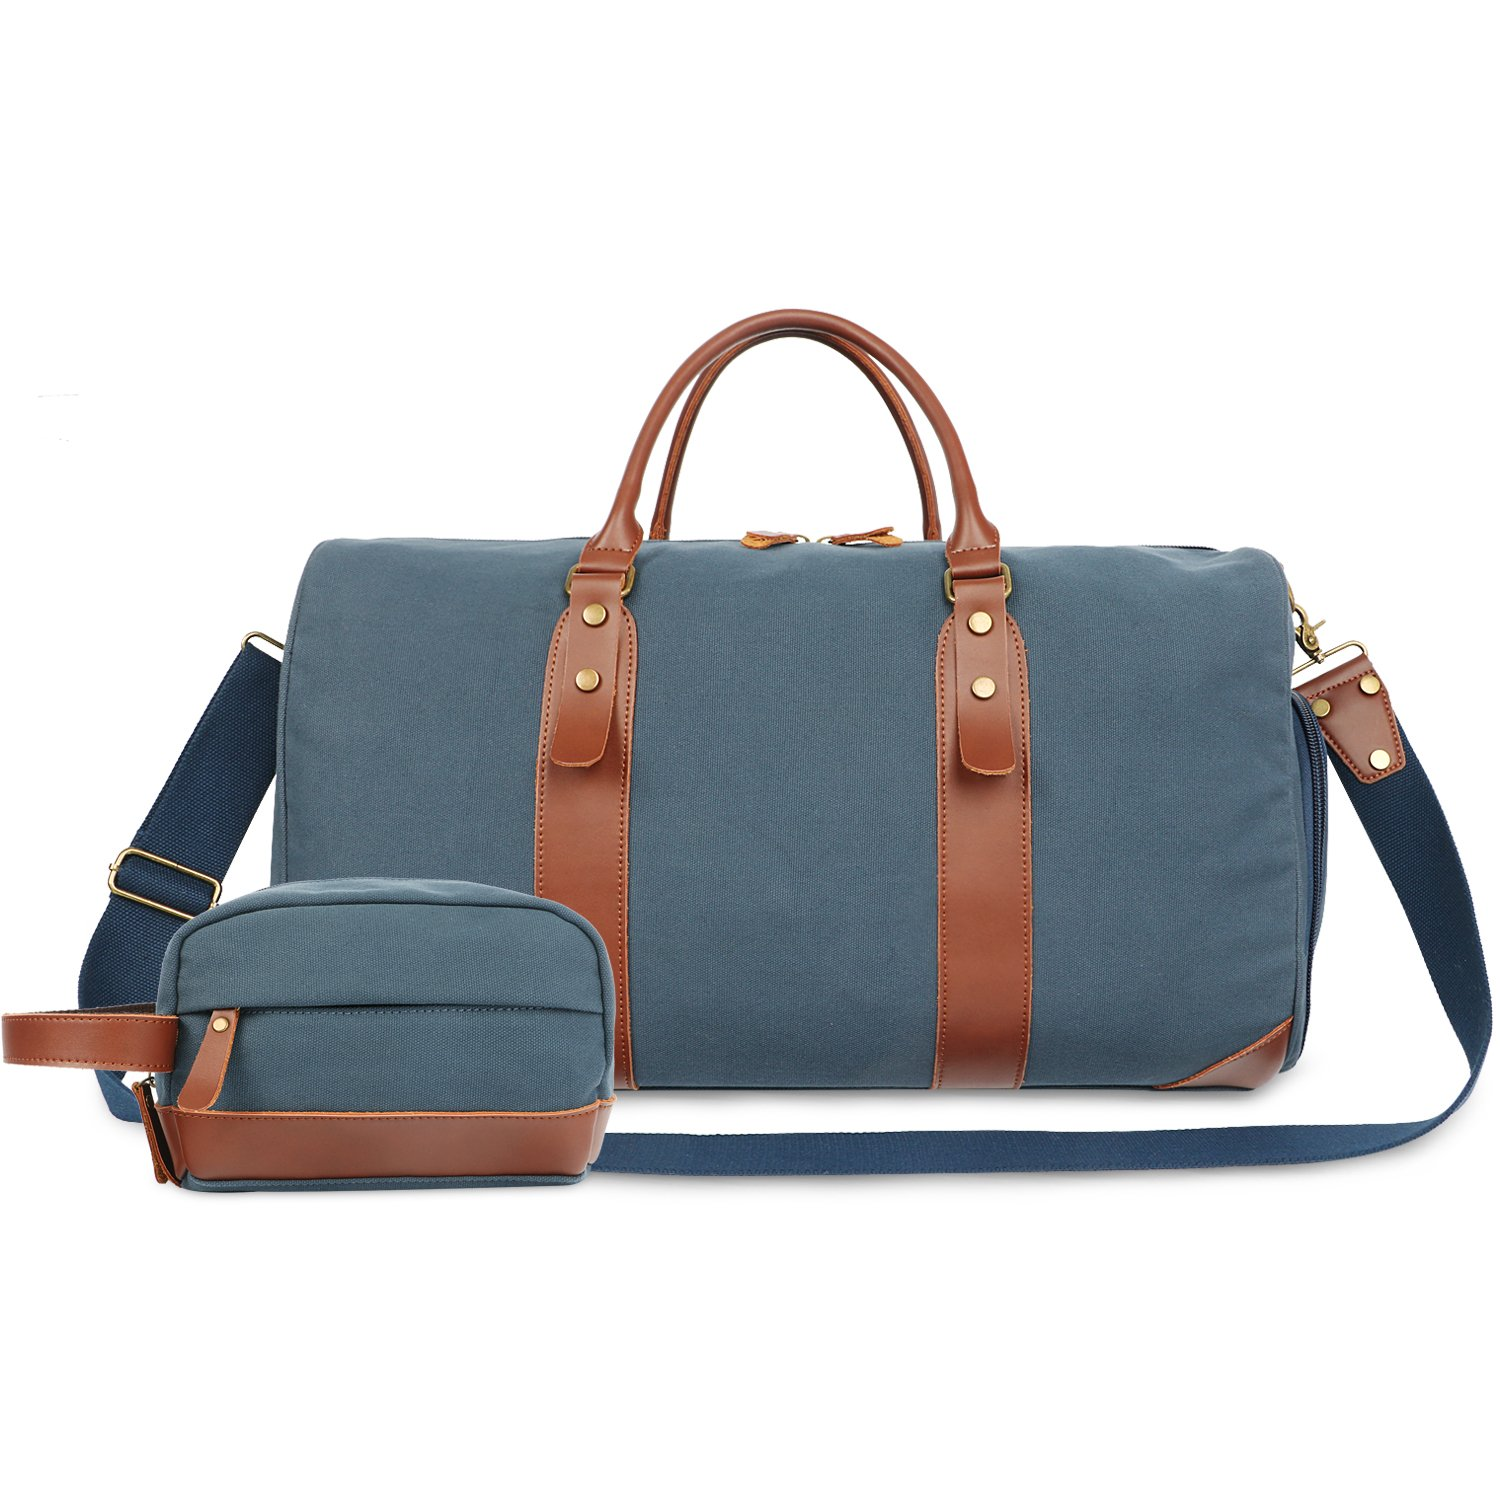 Oflamn 21'' Large Duffle Bag Canvas Leather Weekender Overnight Travel Carry On Bag - Free Toiletries Bag (Blue)